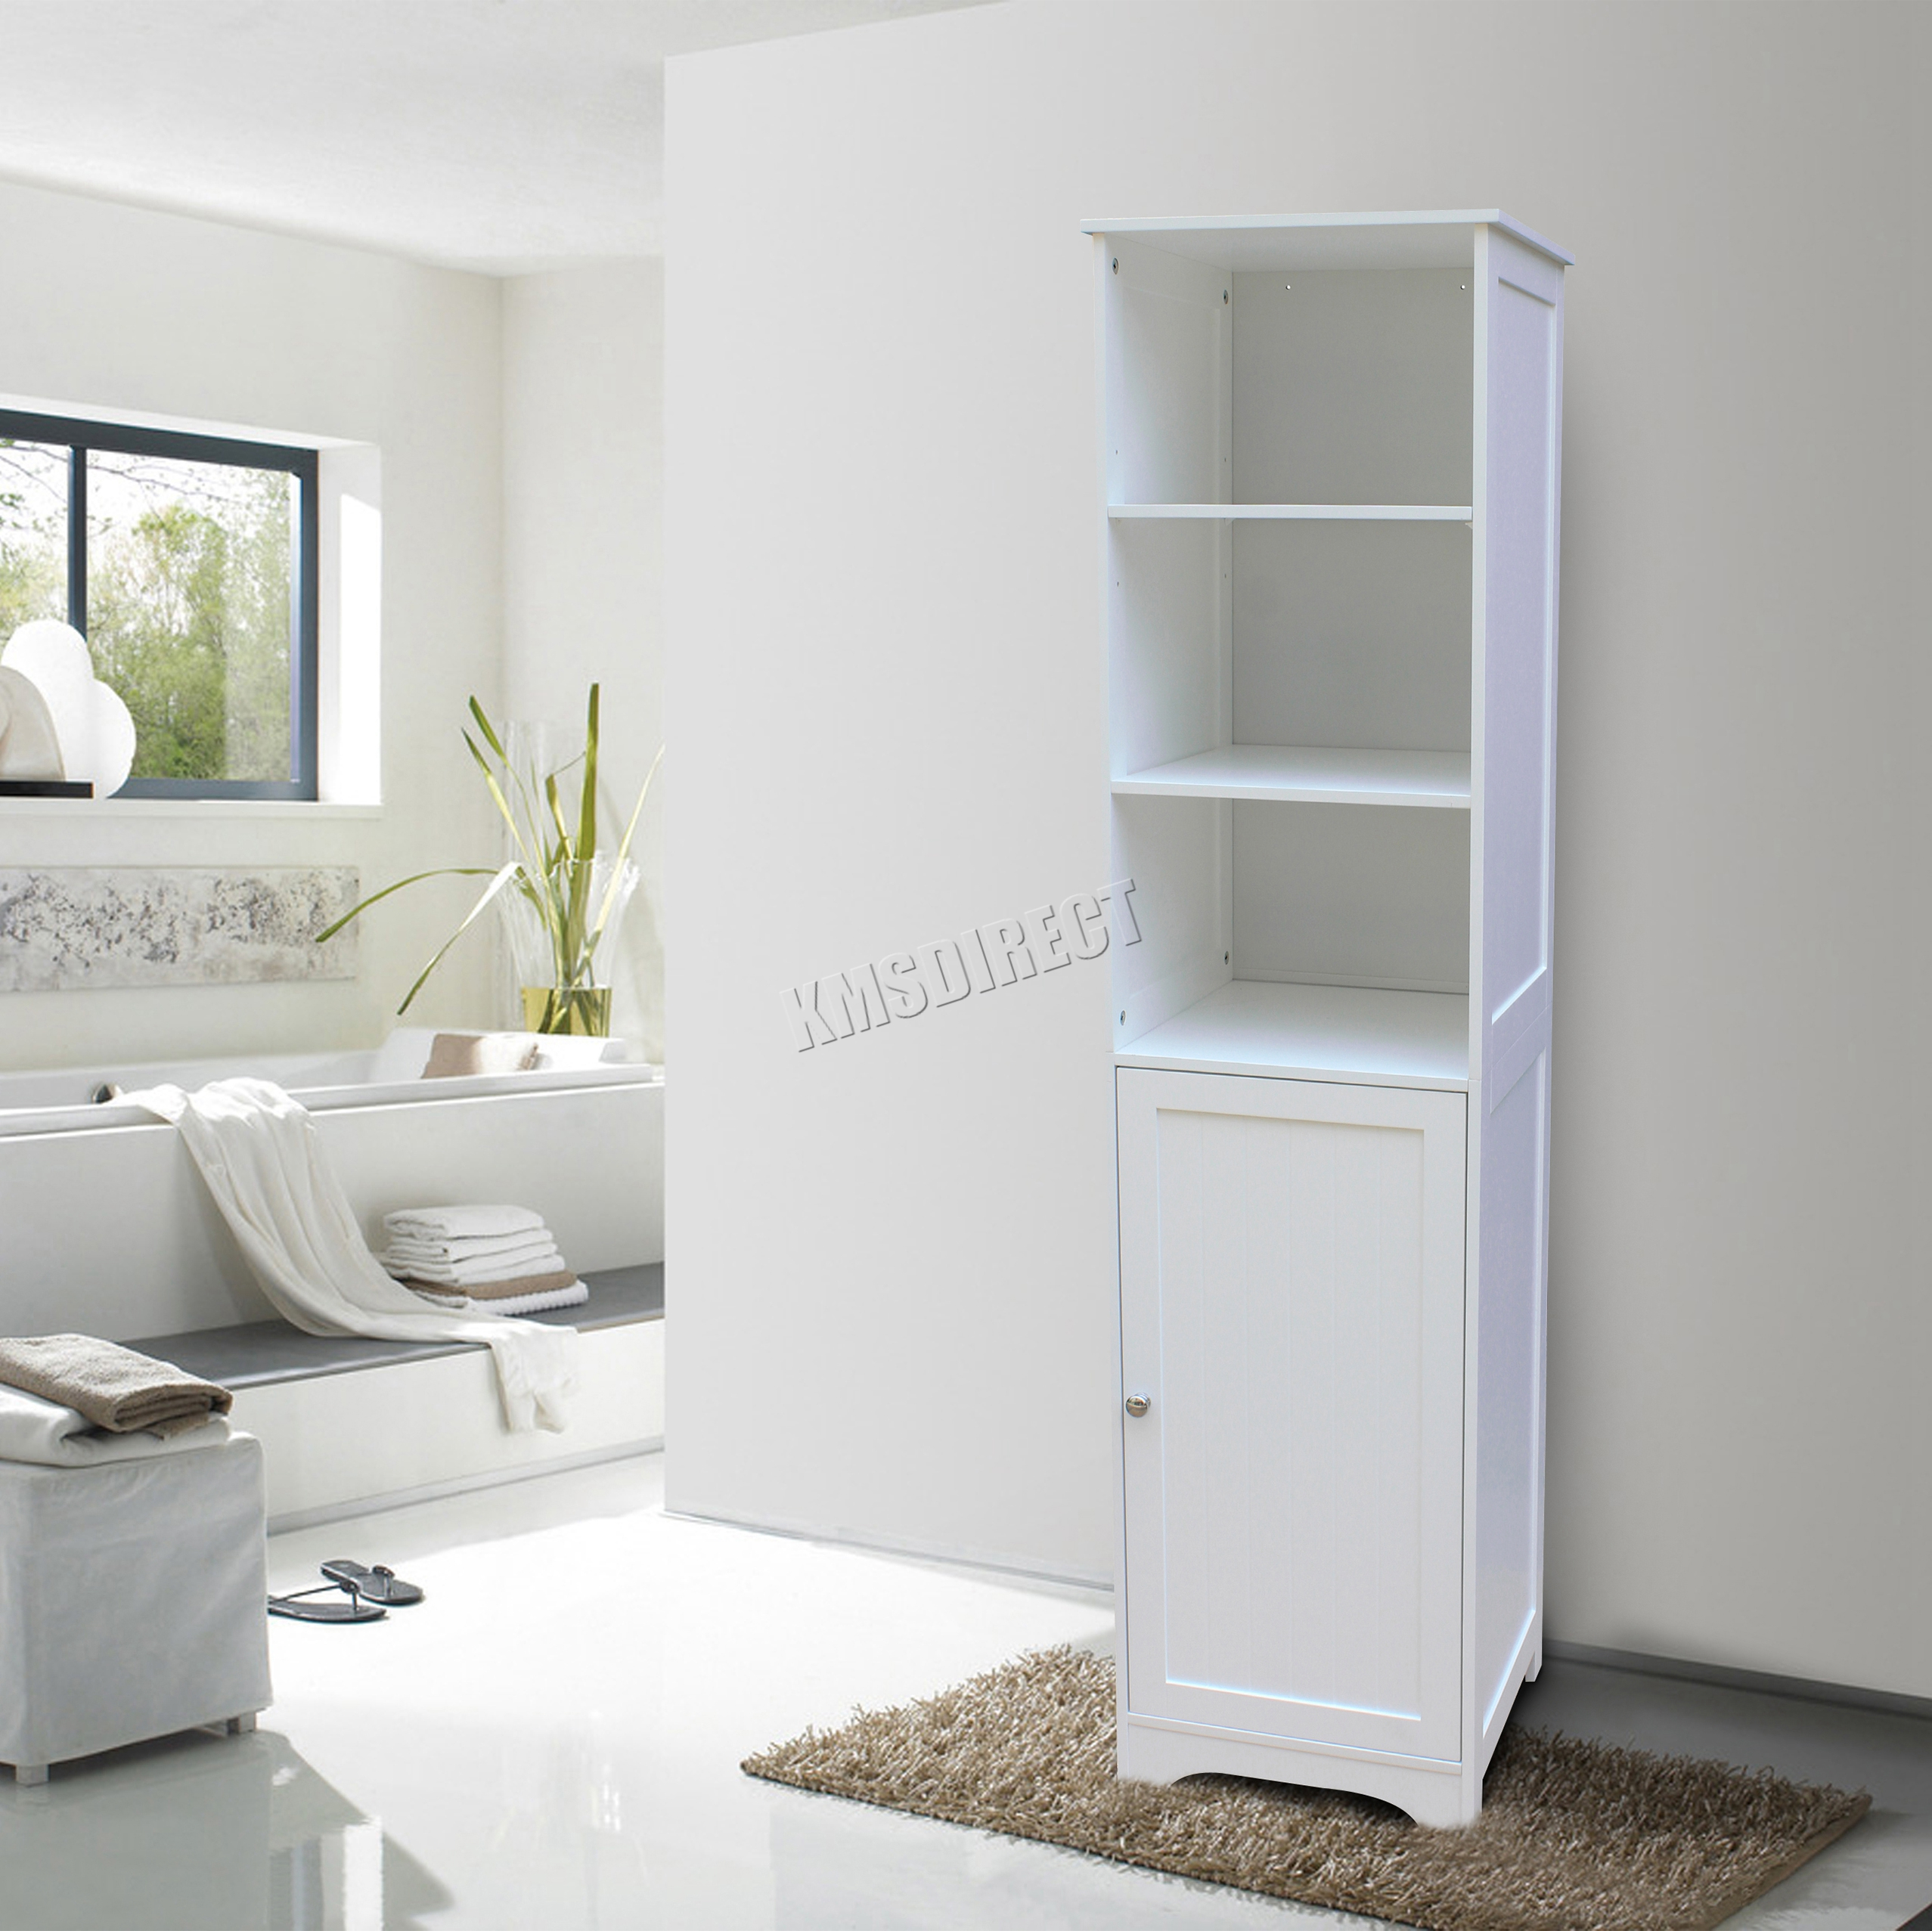 mount organizer built corner shelves tower storage the for vanity cabinet wall with bathroom toilet over and closet in drawers racks thin towel white sale linen cabinets narrow